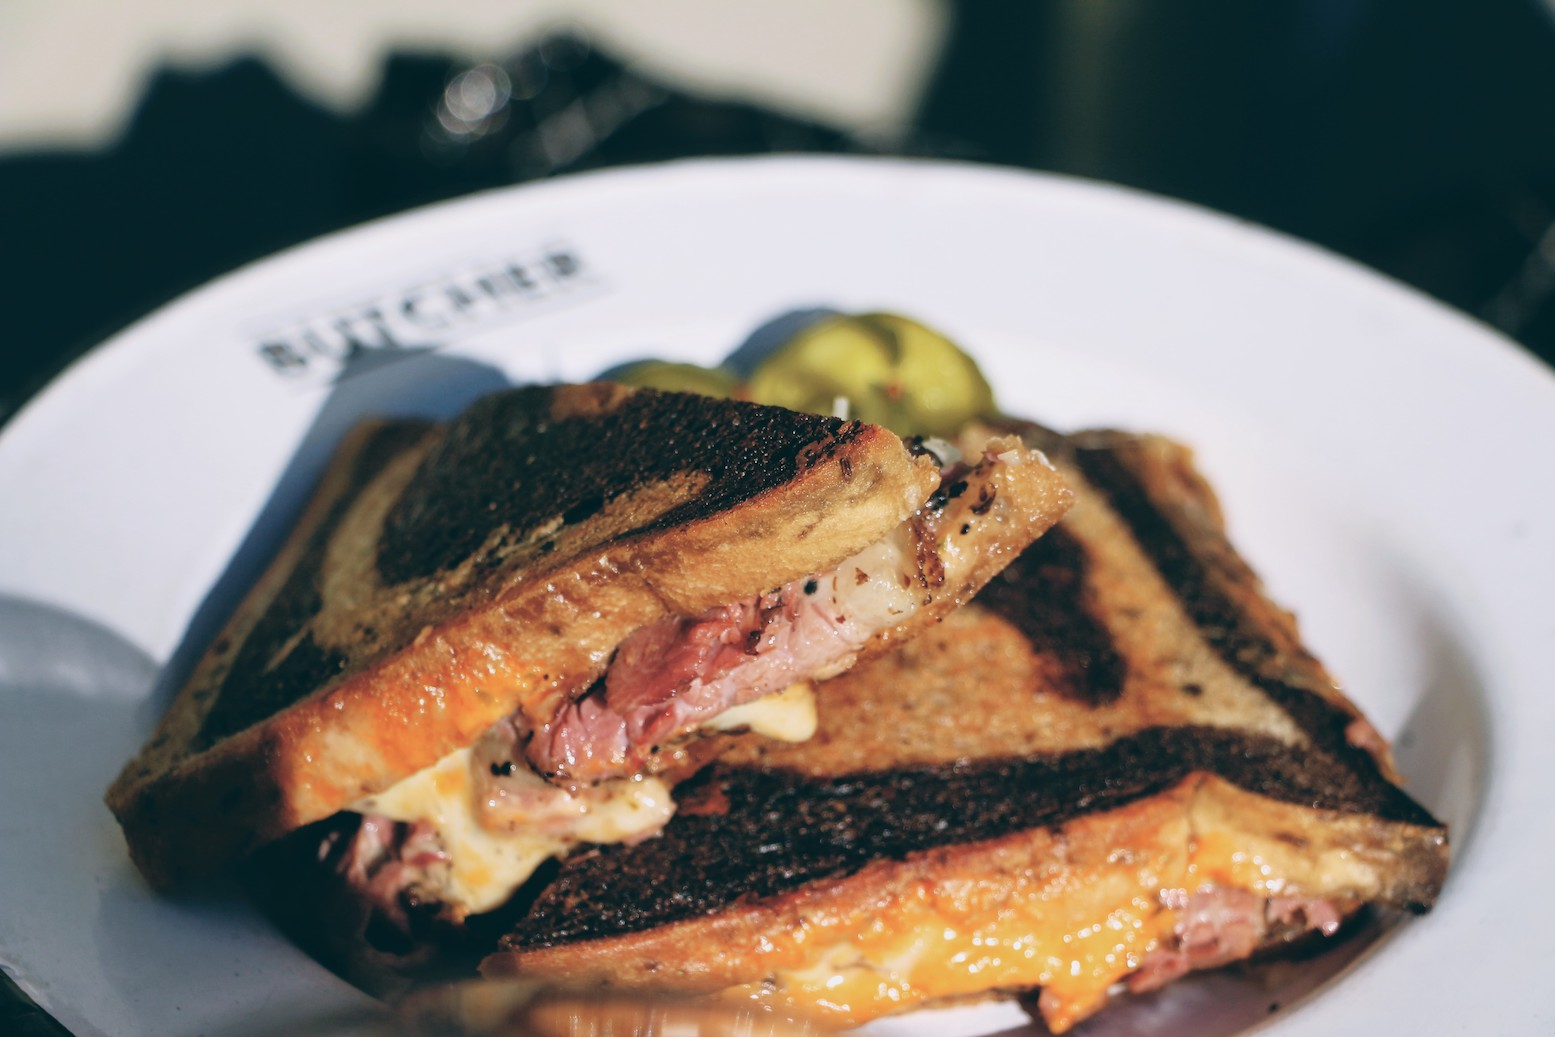 New Orleans: ridiculously delicious American sandwiches at Cochon Butcher